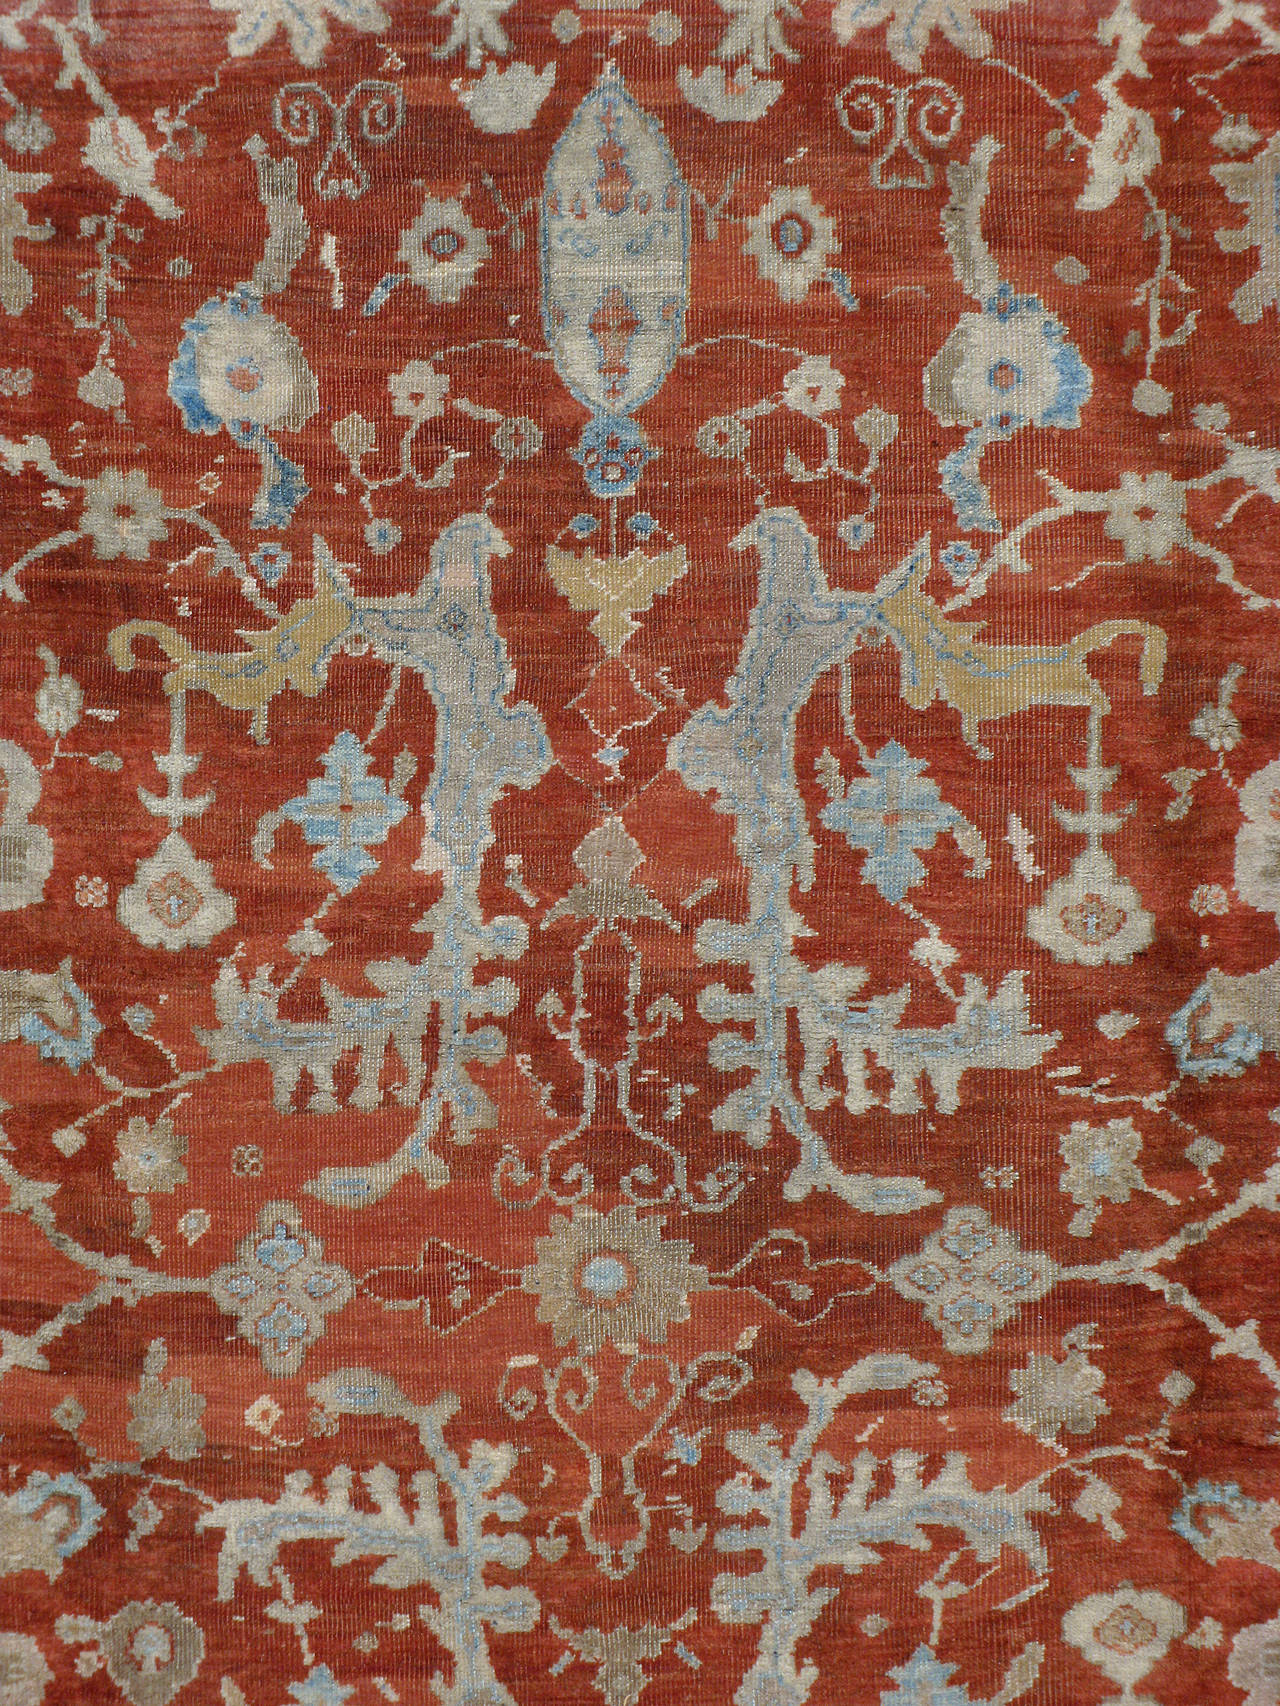 An antique Persian Sultanabad carpet from the turn of the 20th century. A subdued ivory border and designs in soft-pastel hues contrast against the bold crimson red field.